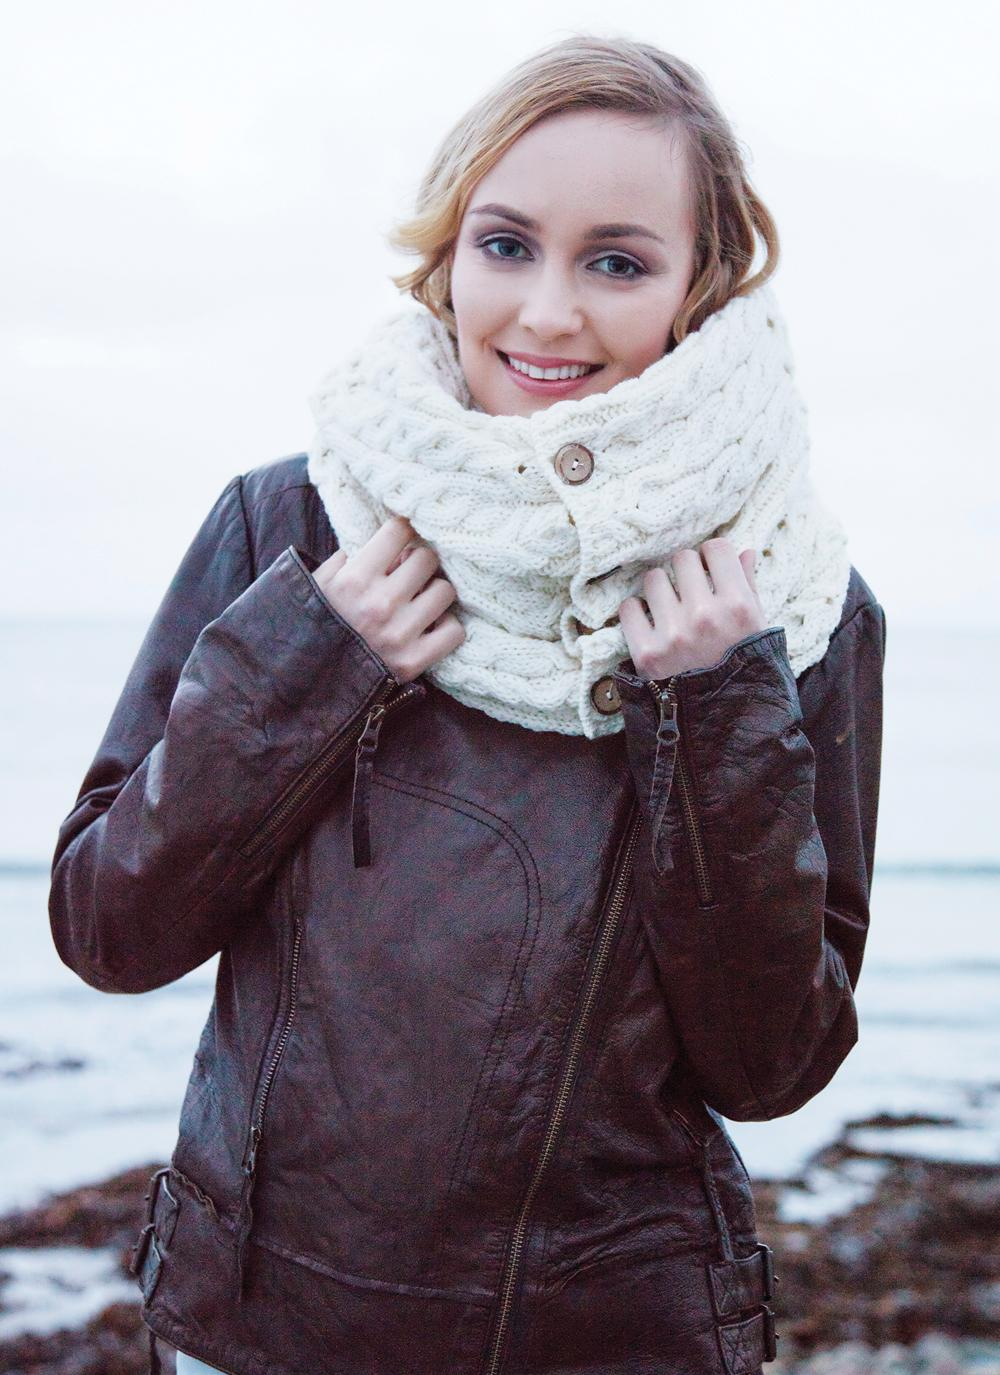 Aran Woollen Mills Super Soft Merino Wool Infinity Cabled Scarf In Natural White